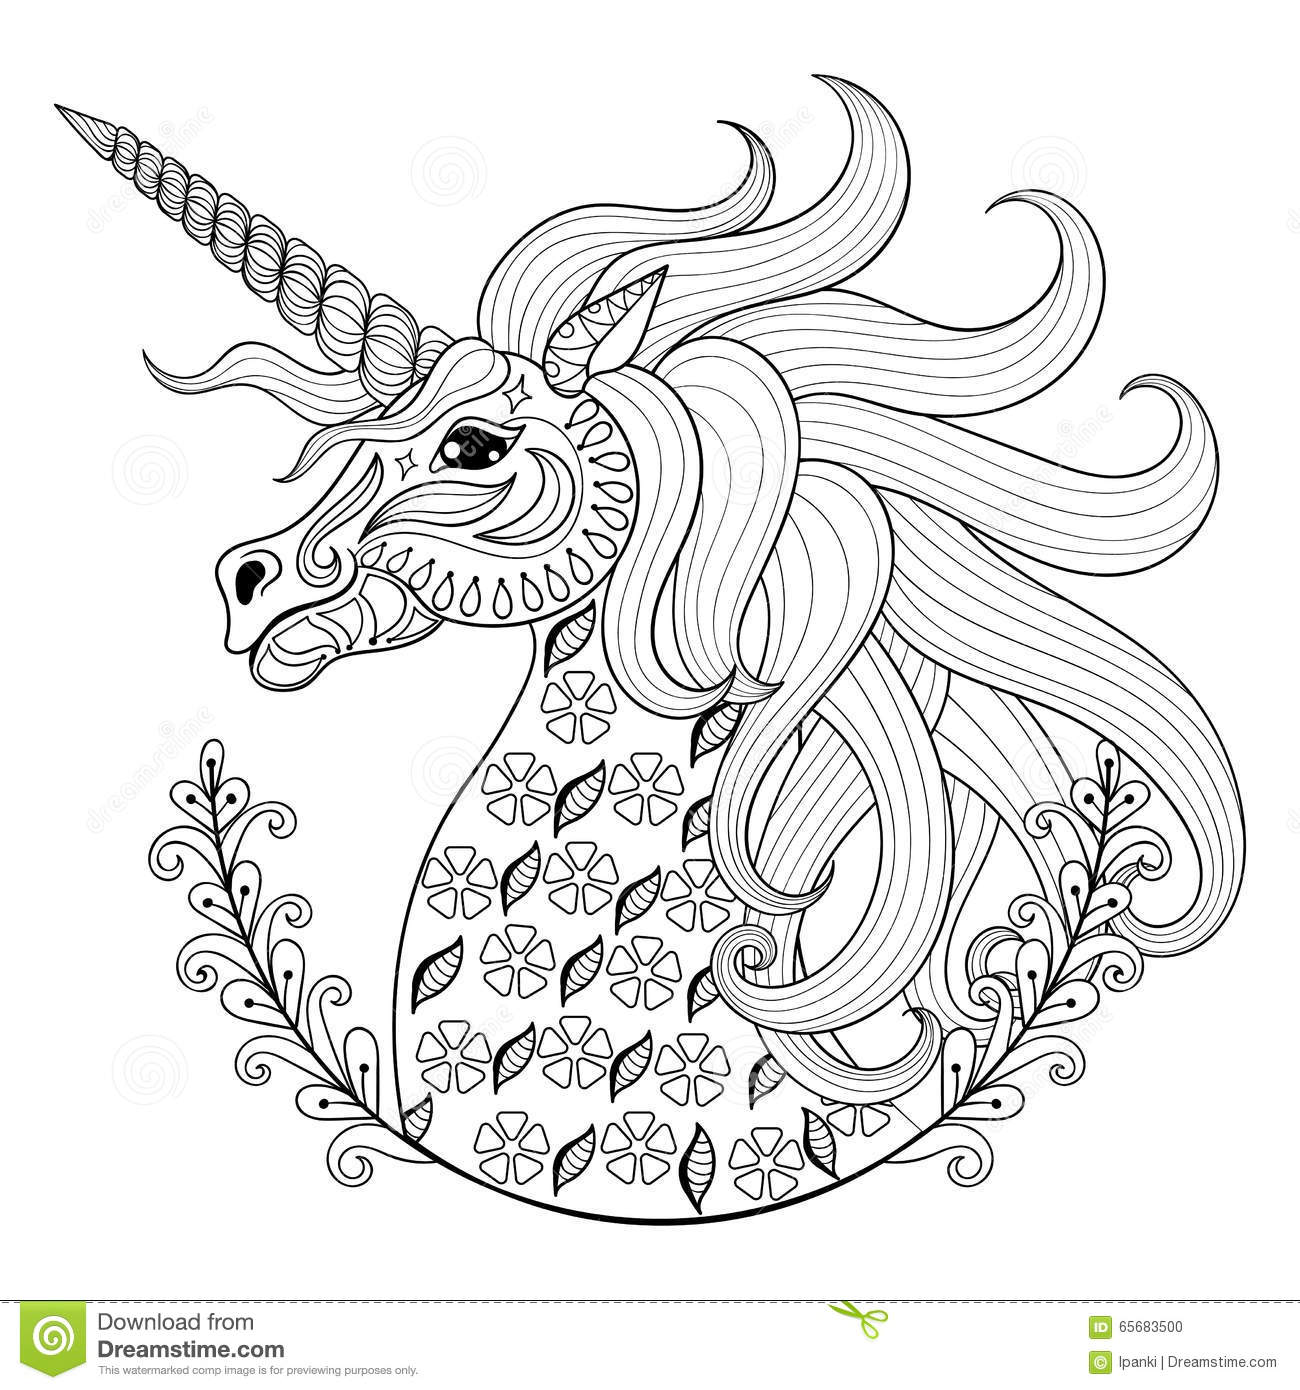 Hand Drawing Unicorn For Adult Anti Stress Coloring Pages Artistic Fairy Tale Magic Animal In Zentangle Tribal Style Patterned Illustartion